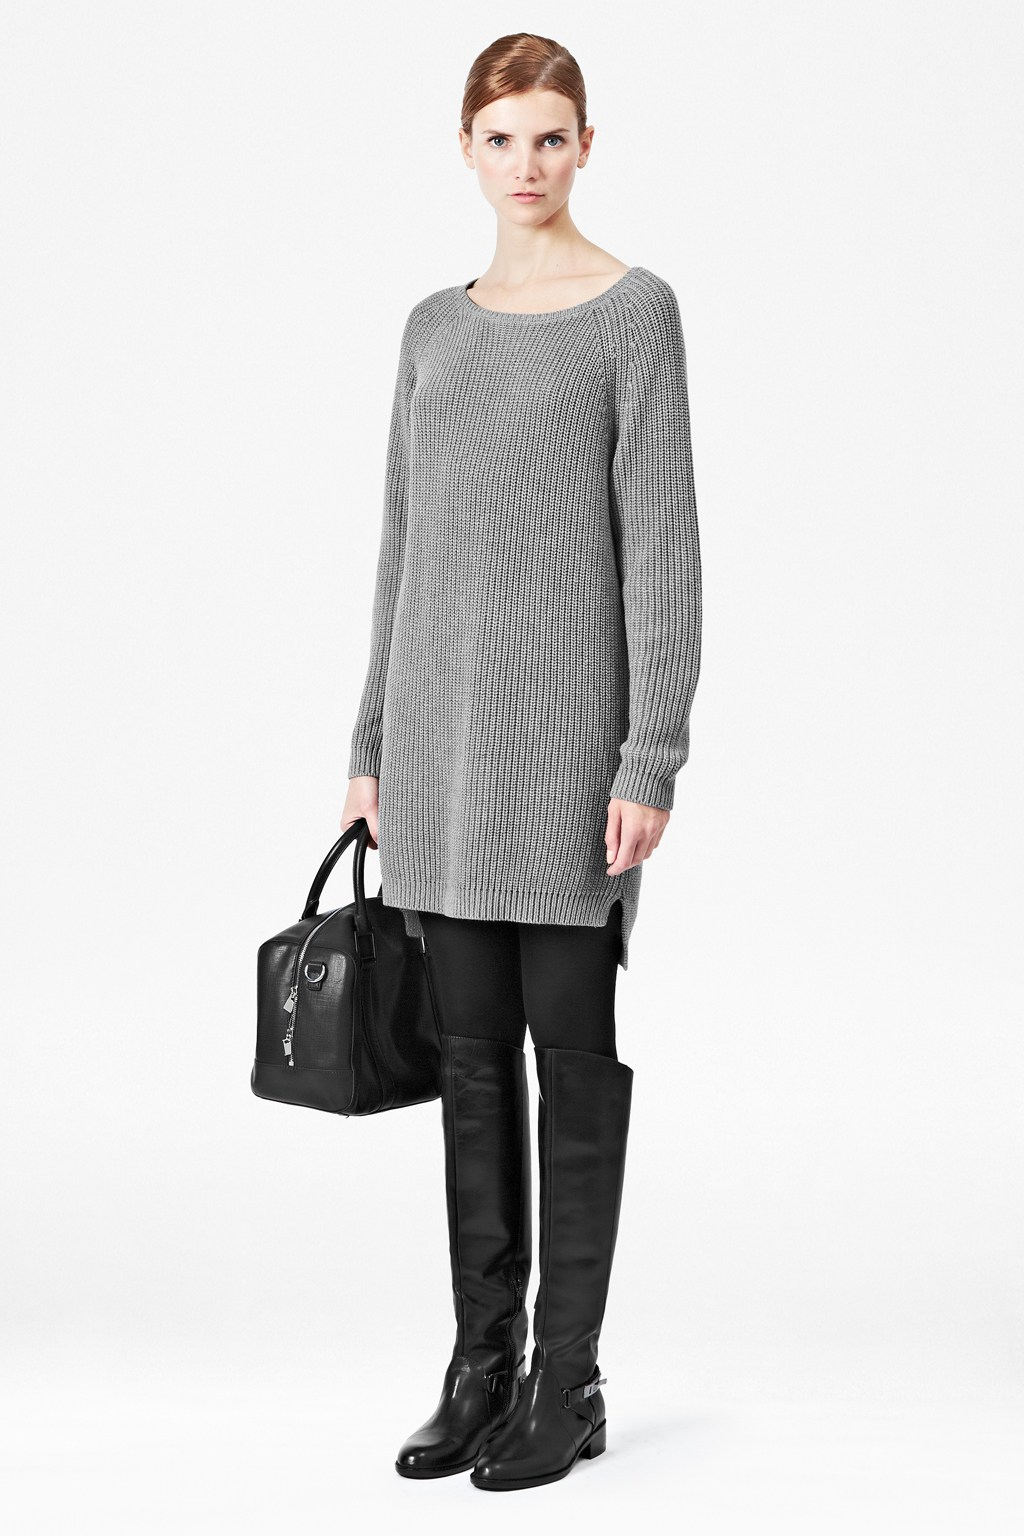 Opinions On Jumper Dress